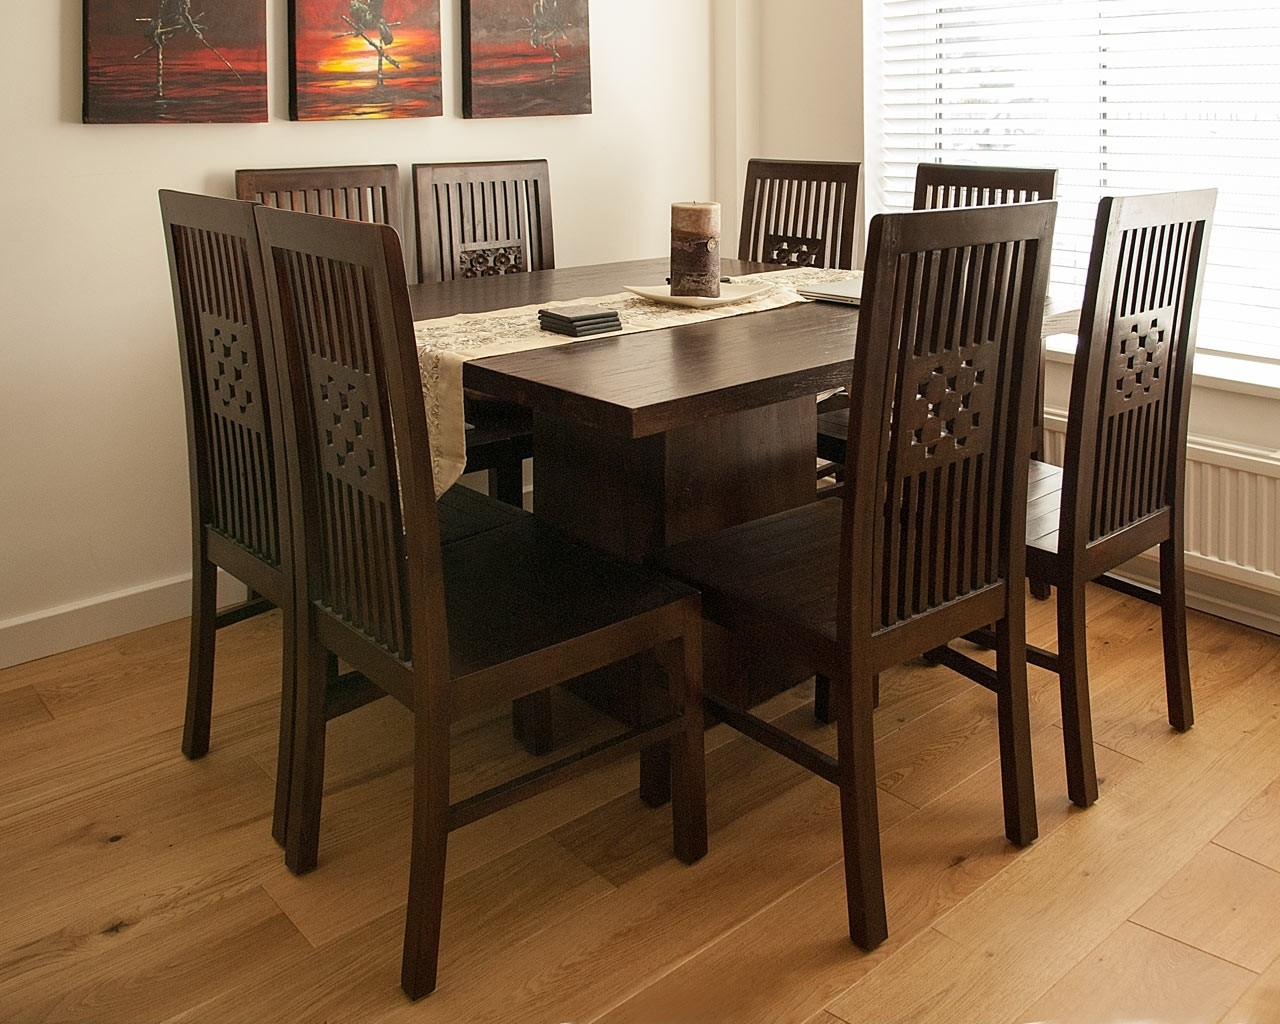 The Making Of The Dark Wood Dining Table – Home Decor Ideas Throughout Well Liked Dark Wood Dining Tables And Chairs (View 9 of 25)